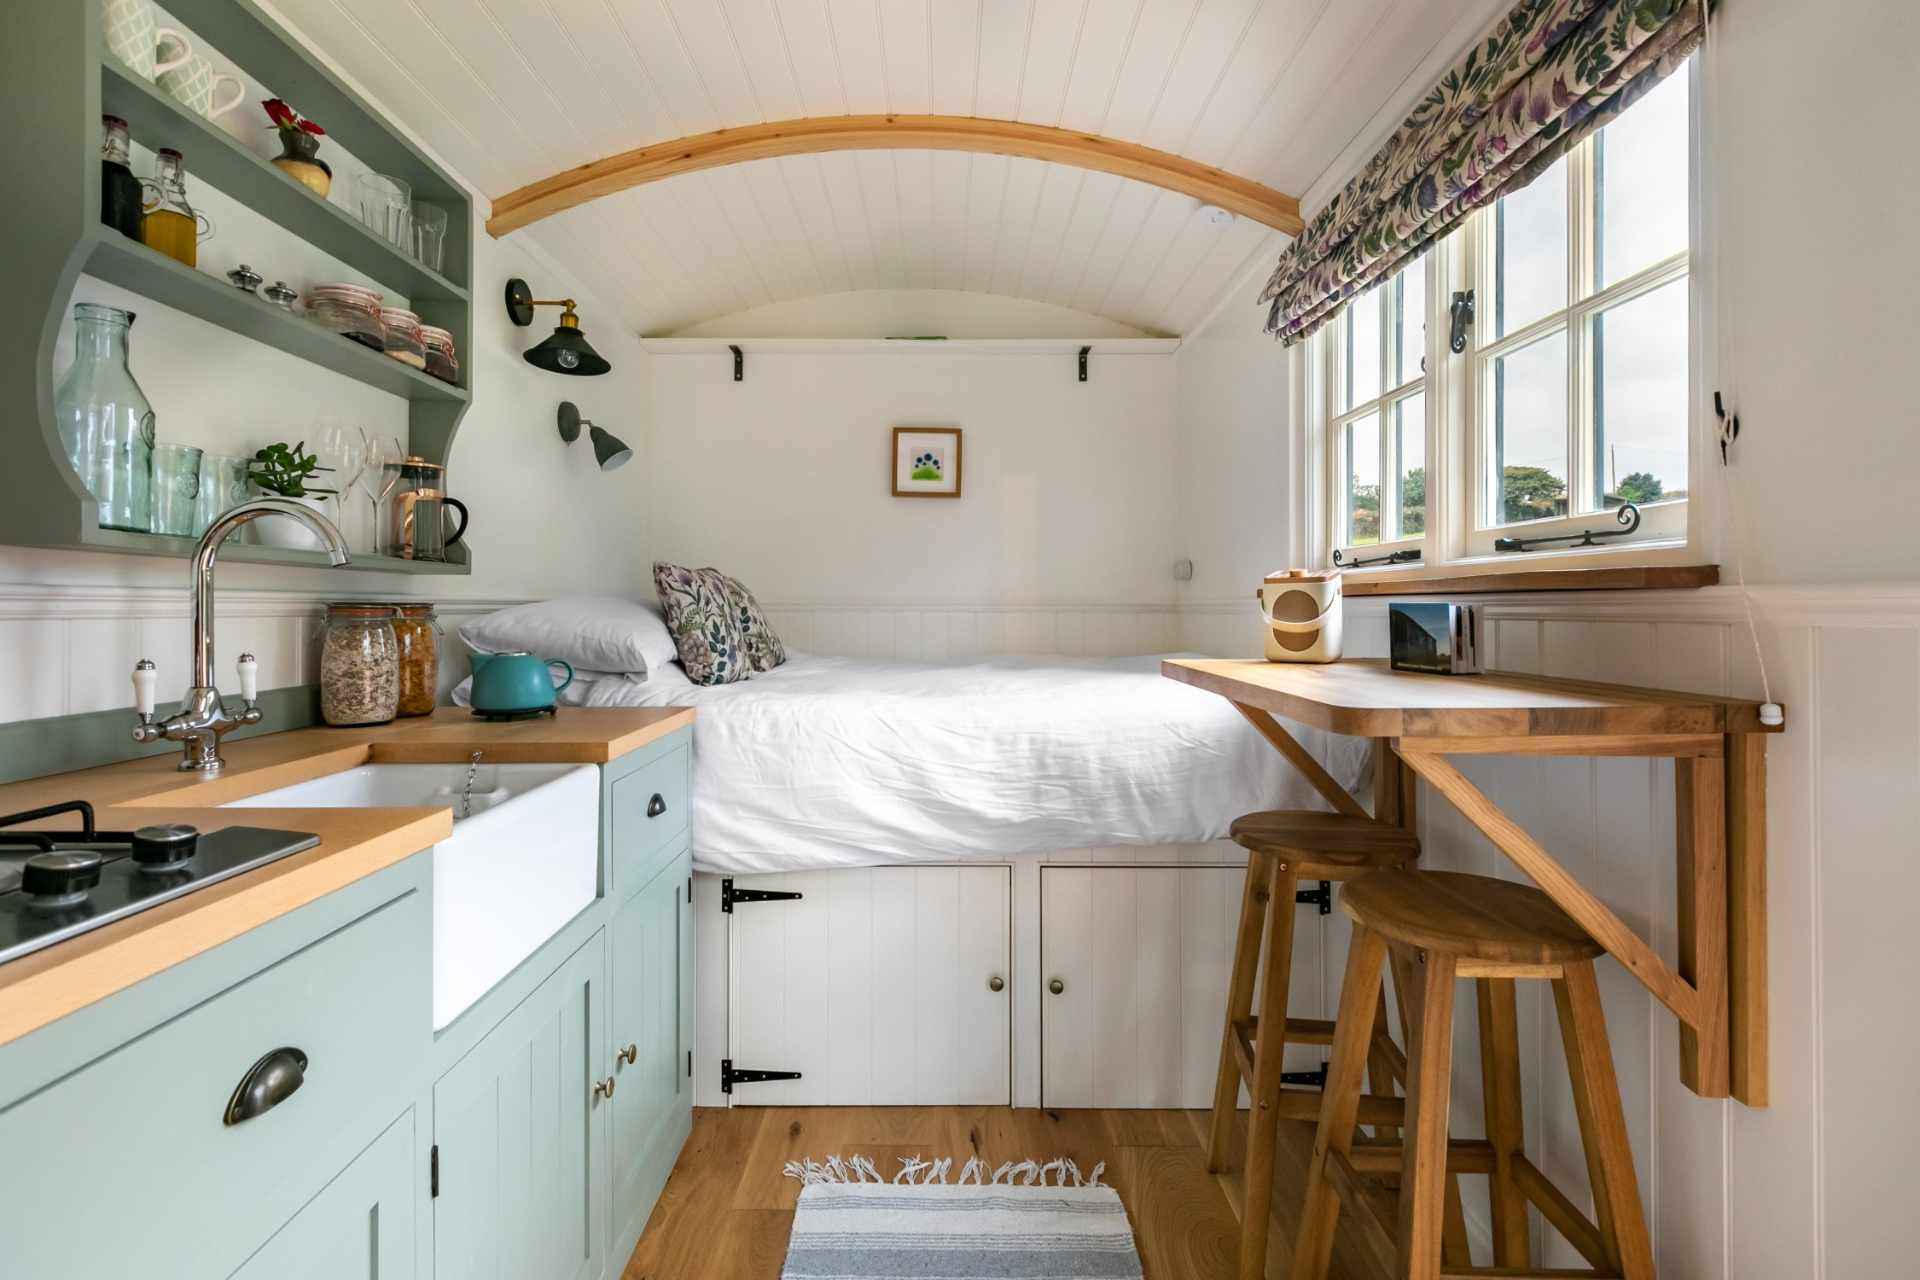 minimalist-shepherds-hut-with-white-bedding-and-mint-countertops-in-falmouth-best-airbnbs-in-cornwall